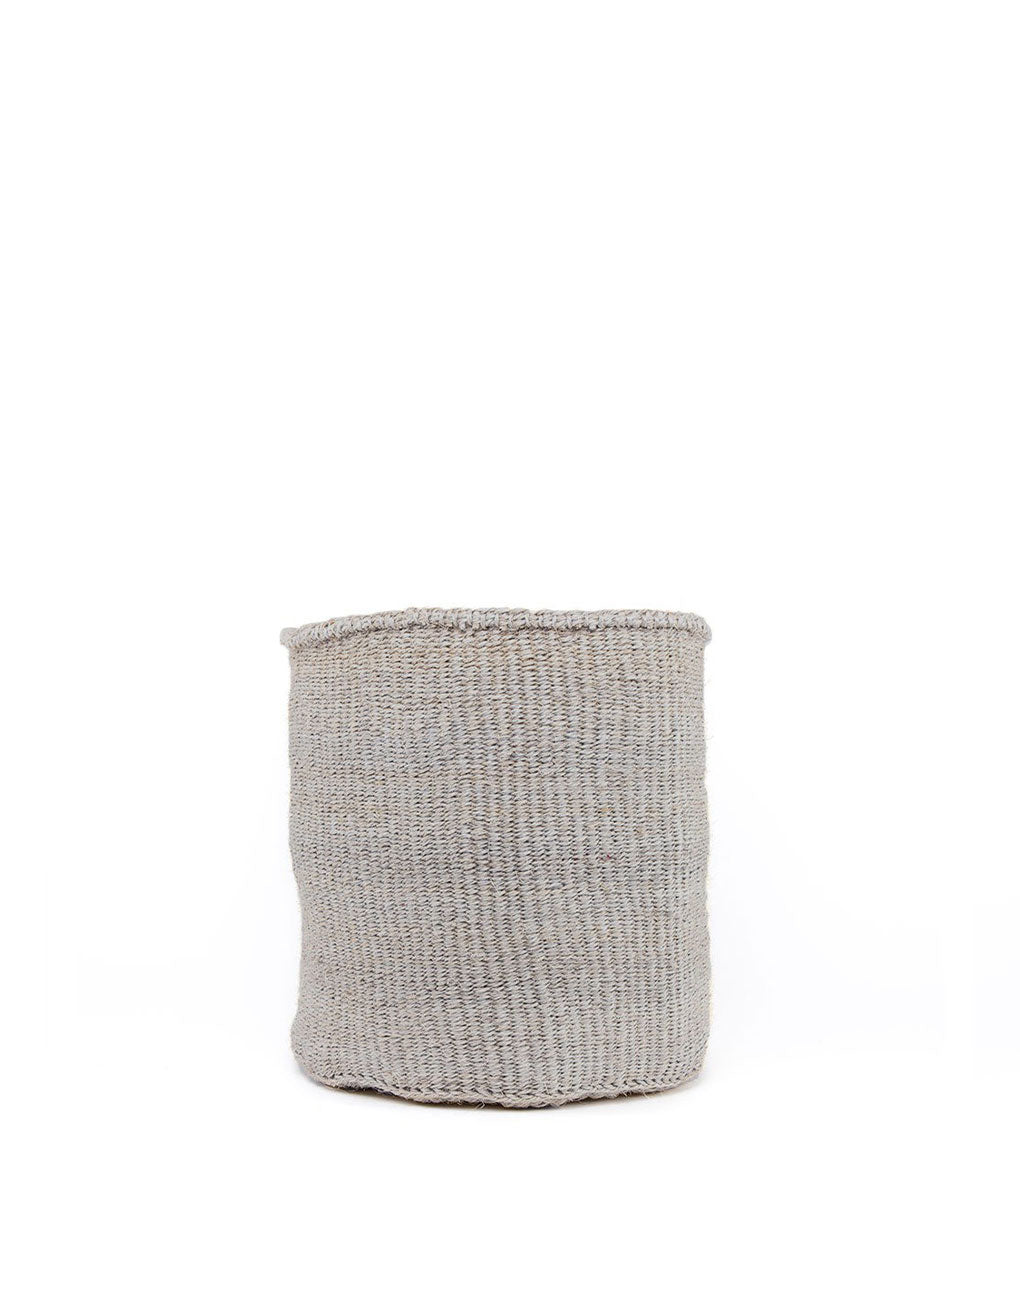 12in Solid Sisal Basket - Gray | The Little Market